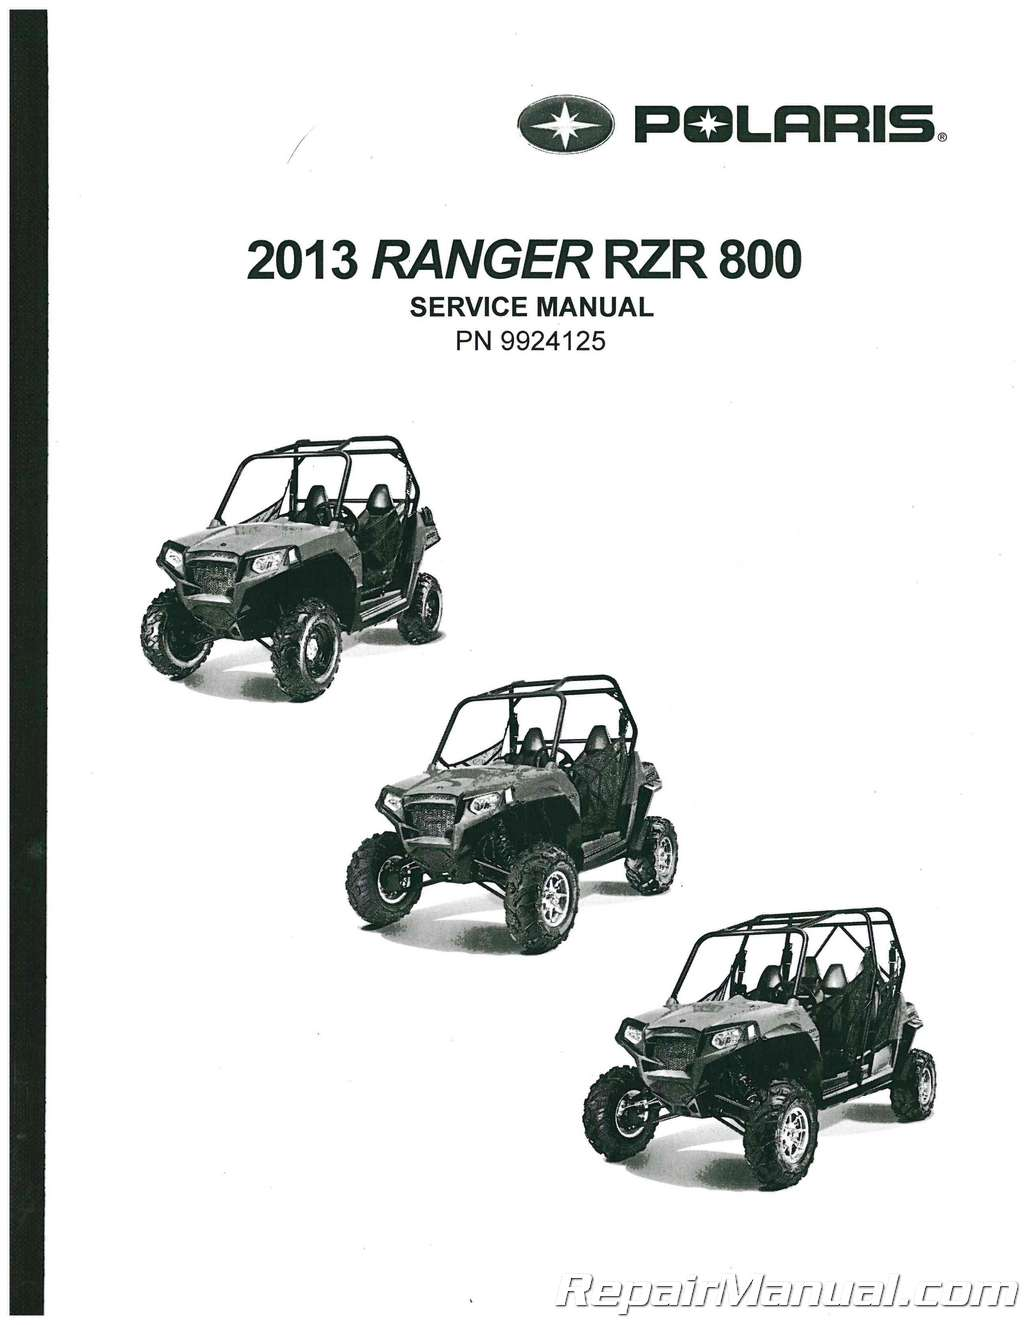 2013 POLARIS RZR OWNERS MANUAL PDF